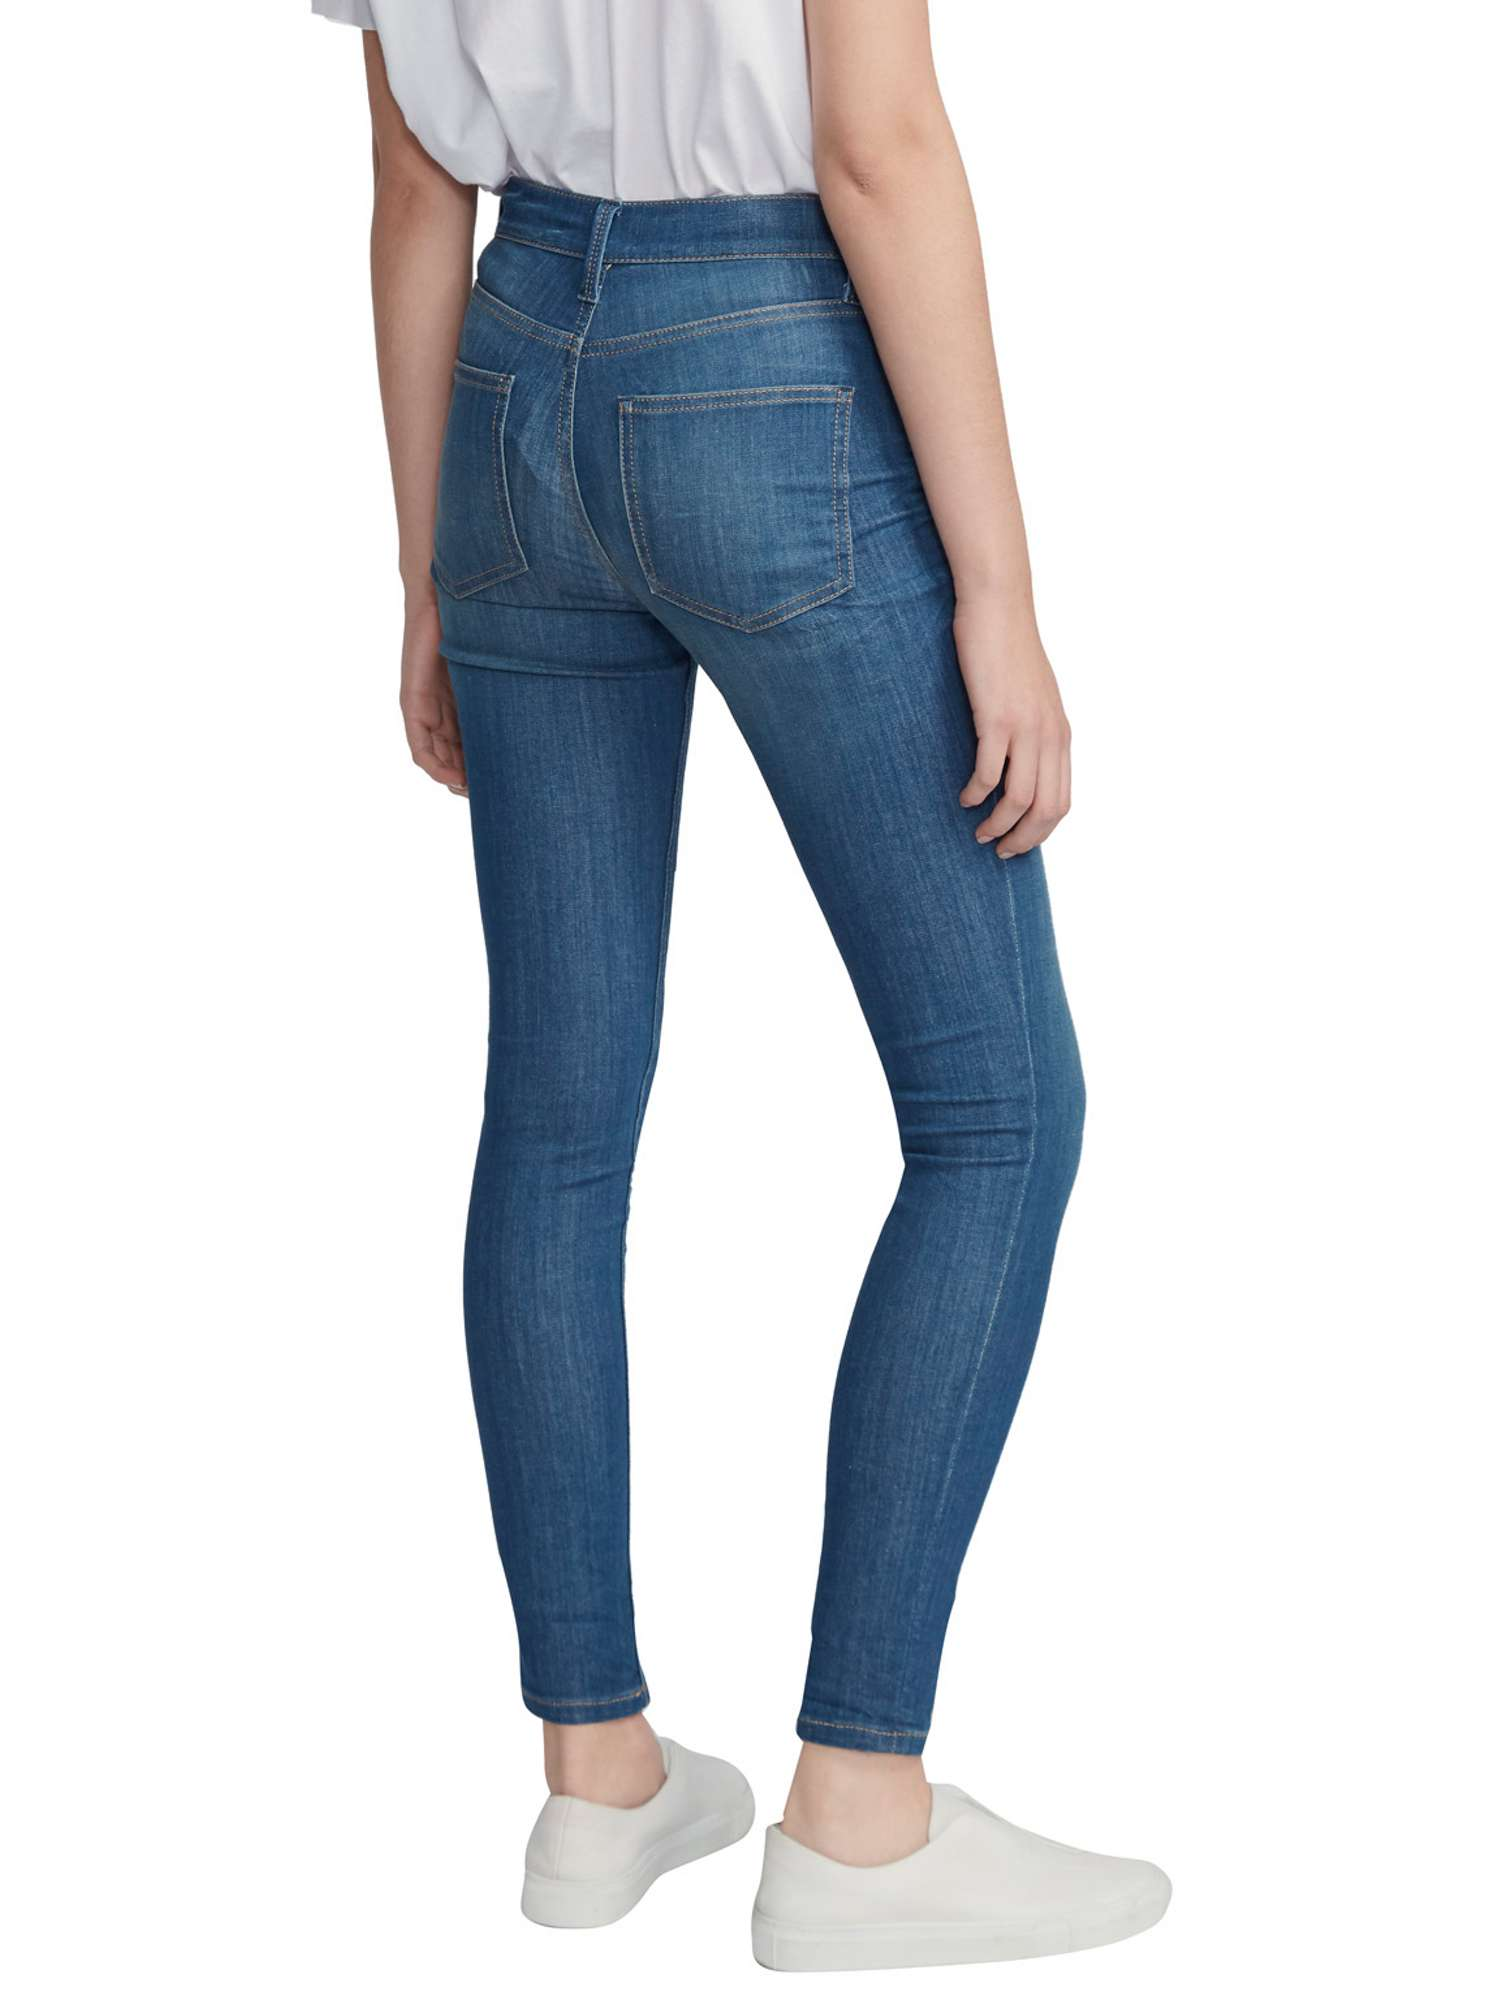 Connection Denim Rebound French Stretch Skinny CxnHF